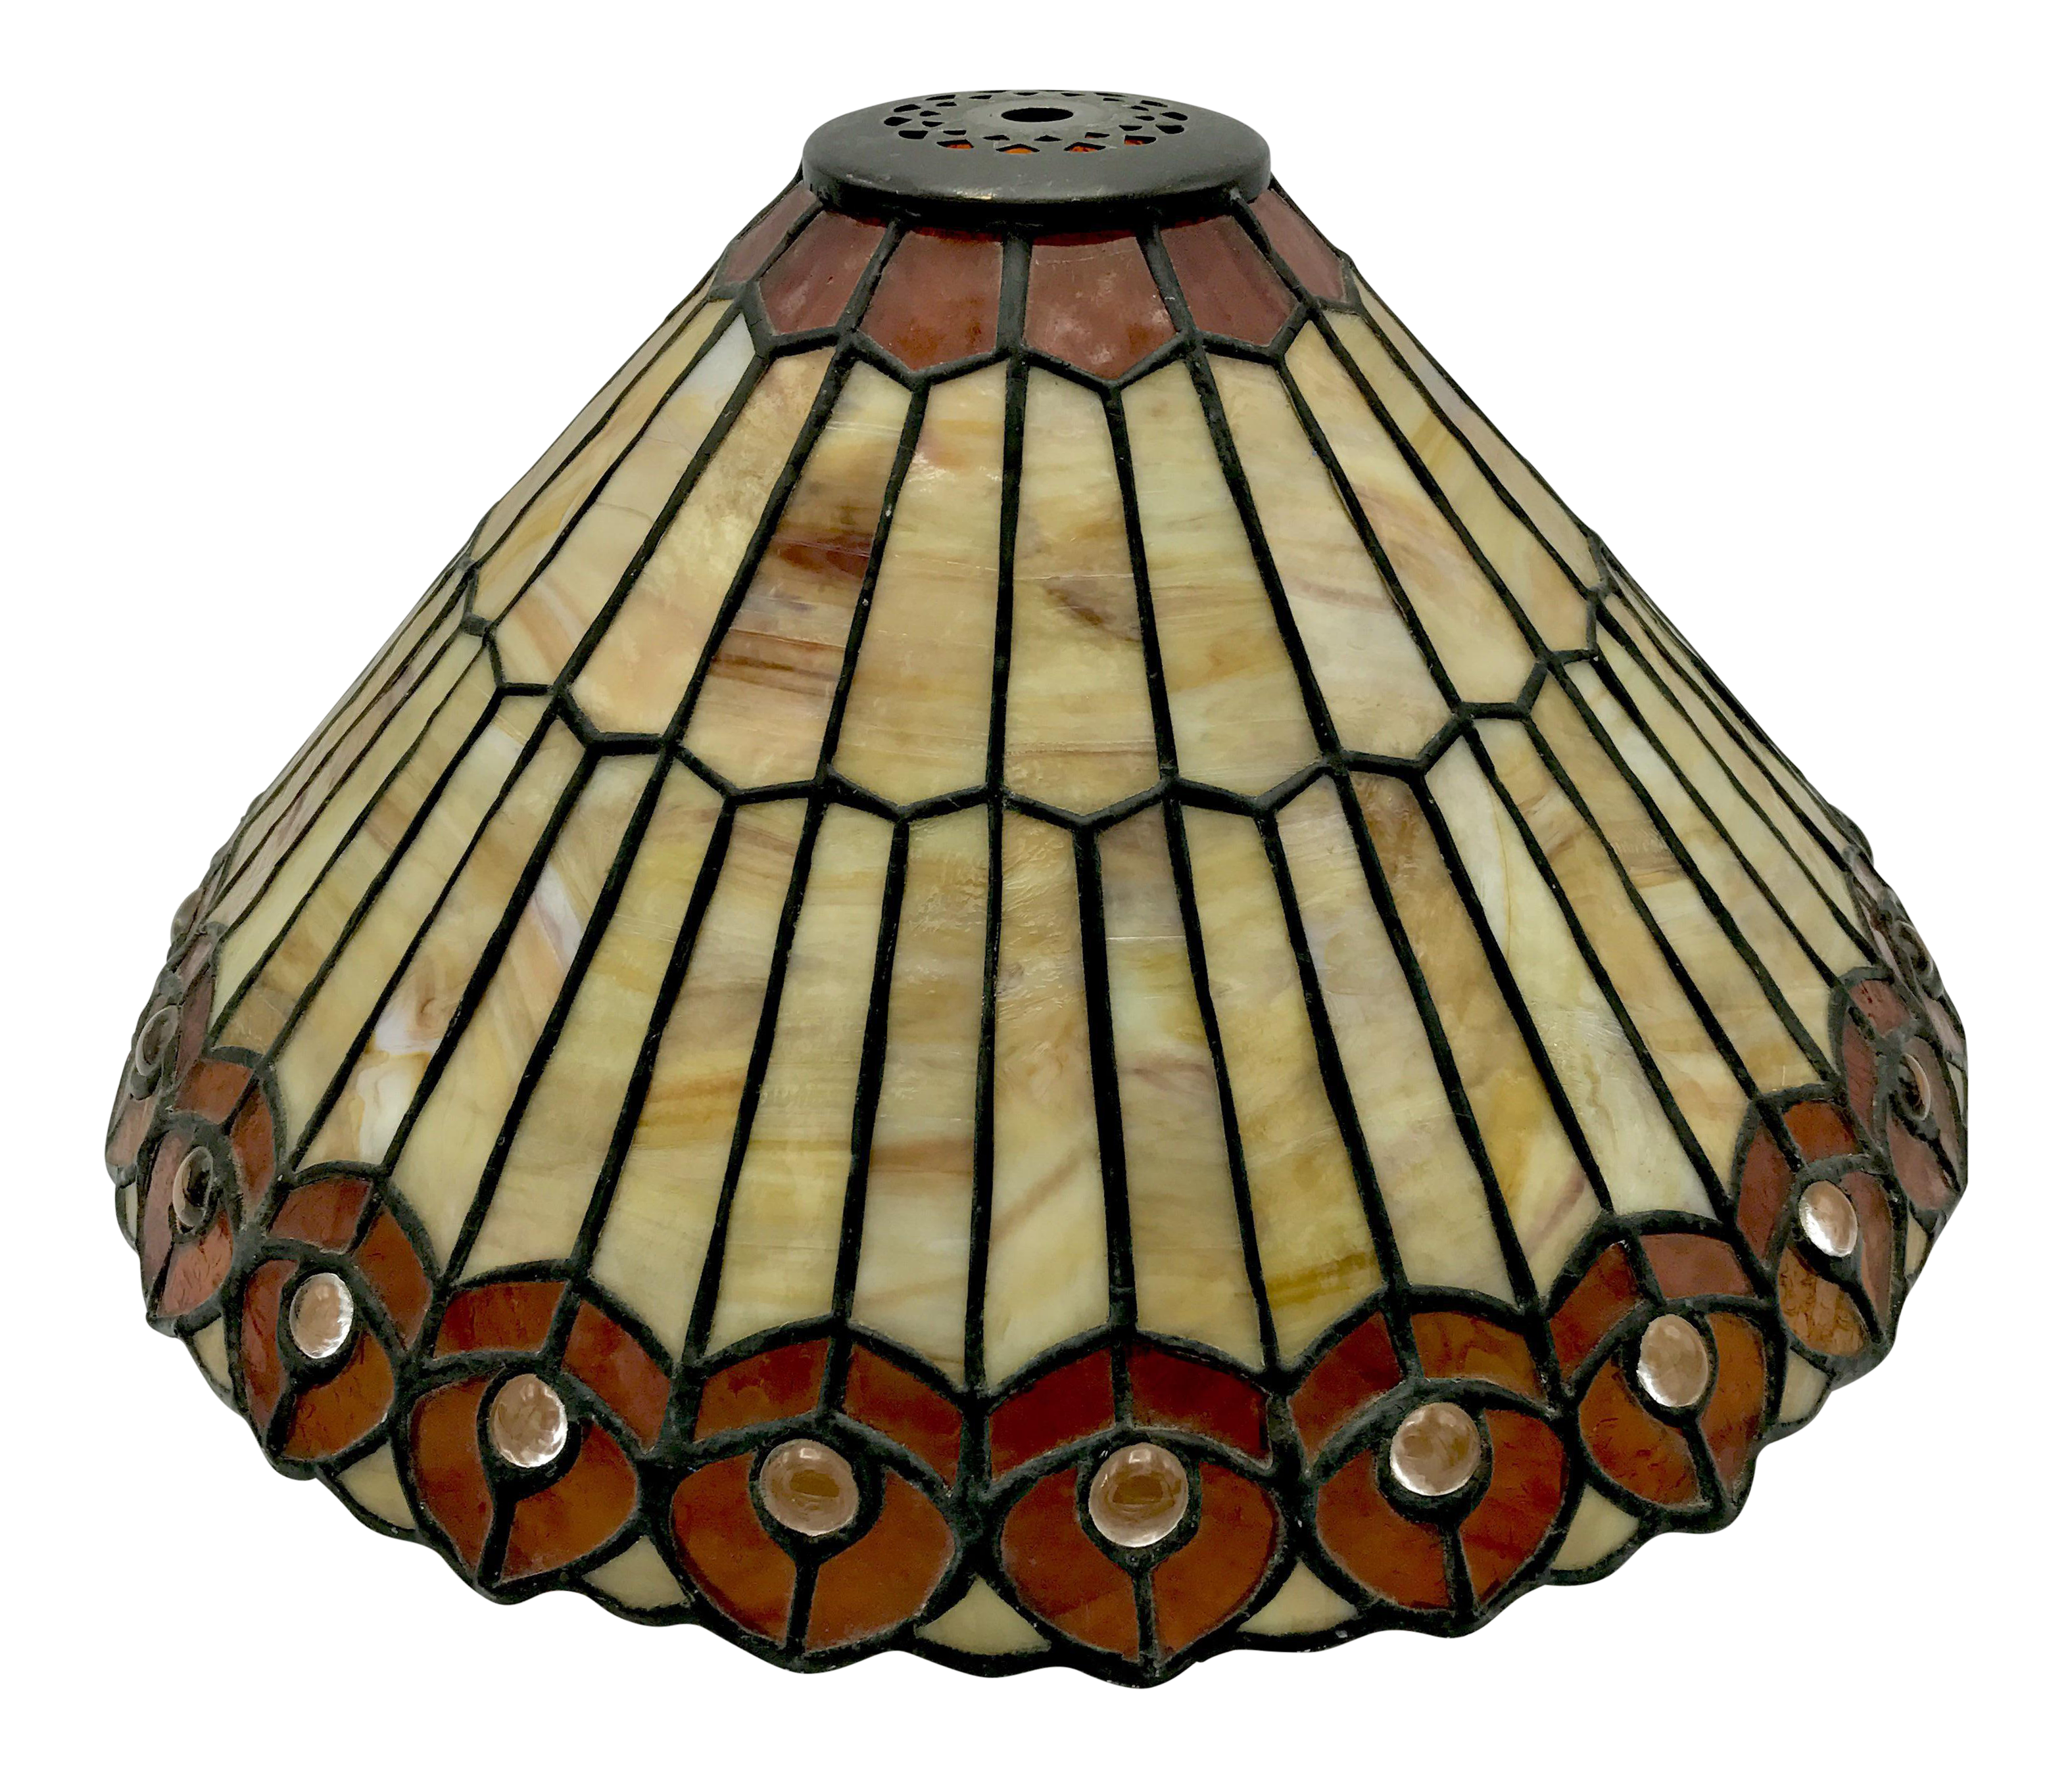 Lamp clipart lampshade. Vintage tiffany style stained